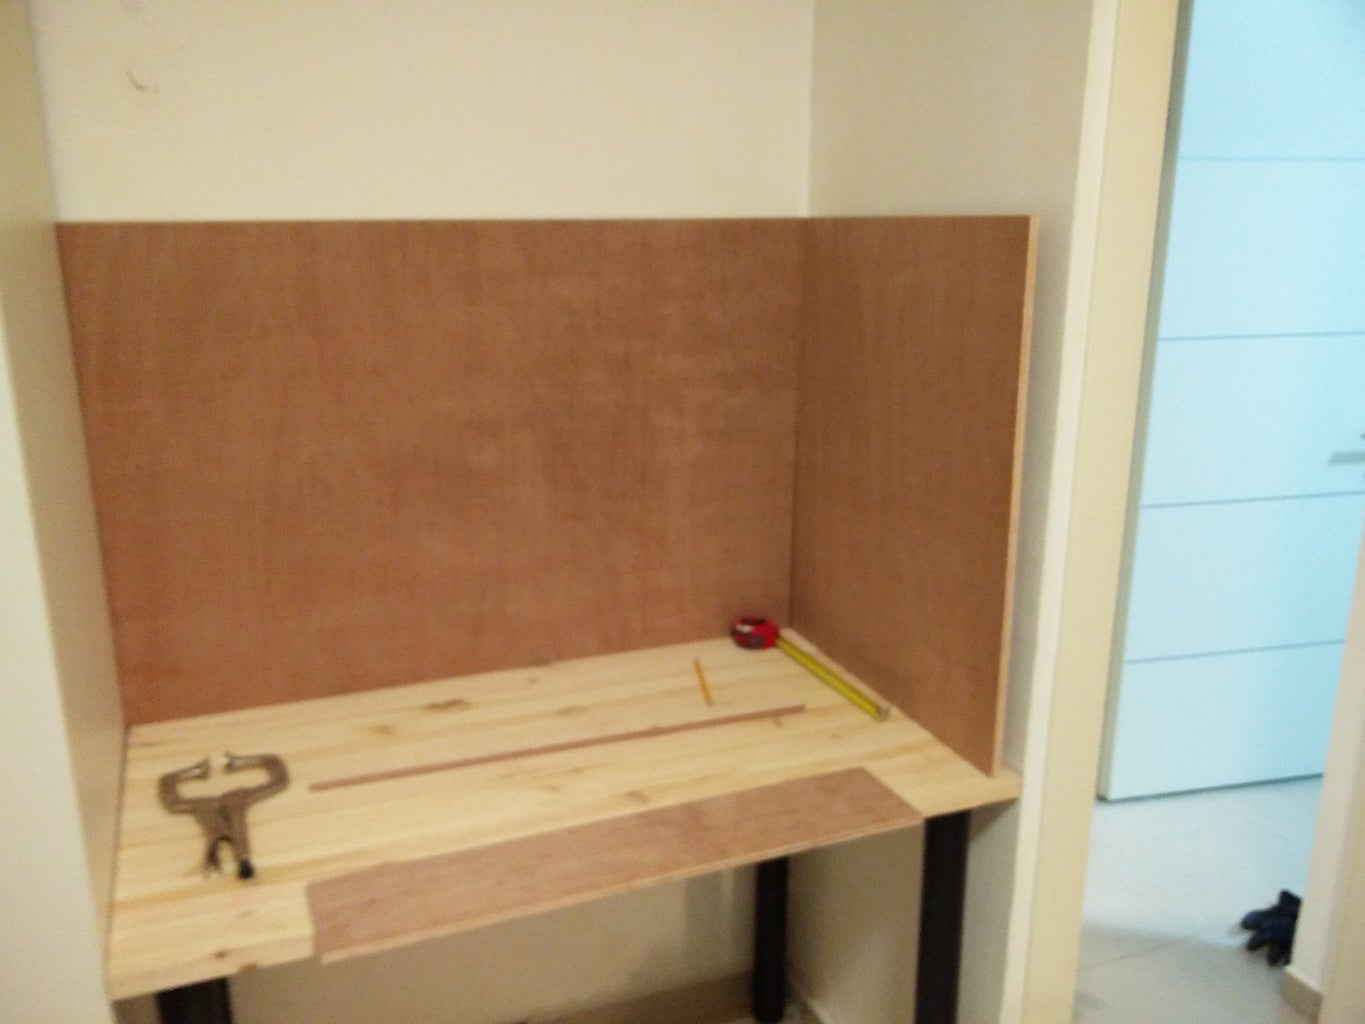 Start With the Attaching the Panels to the Walls